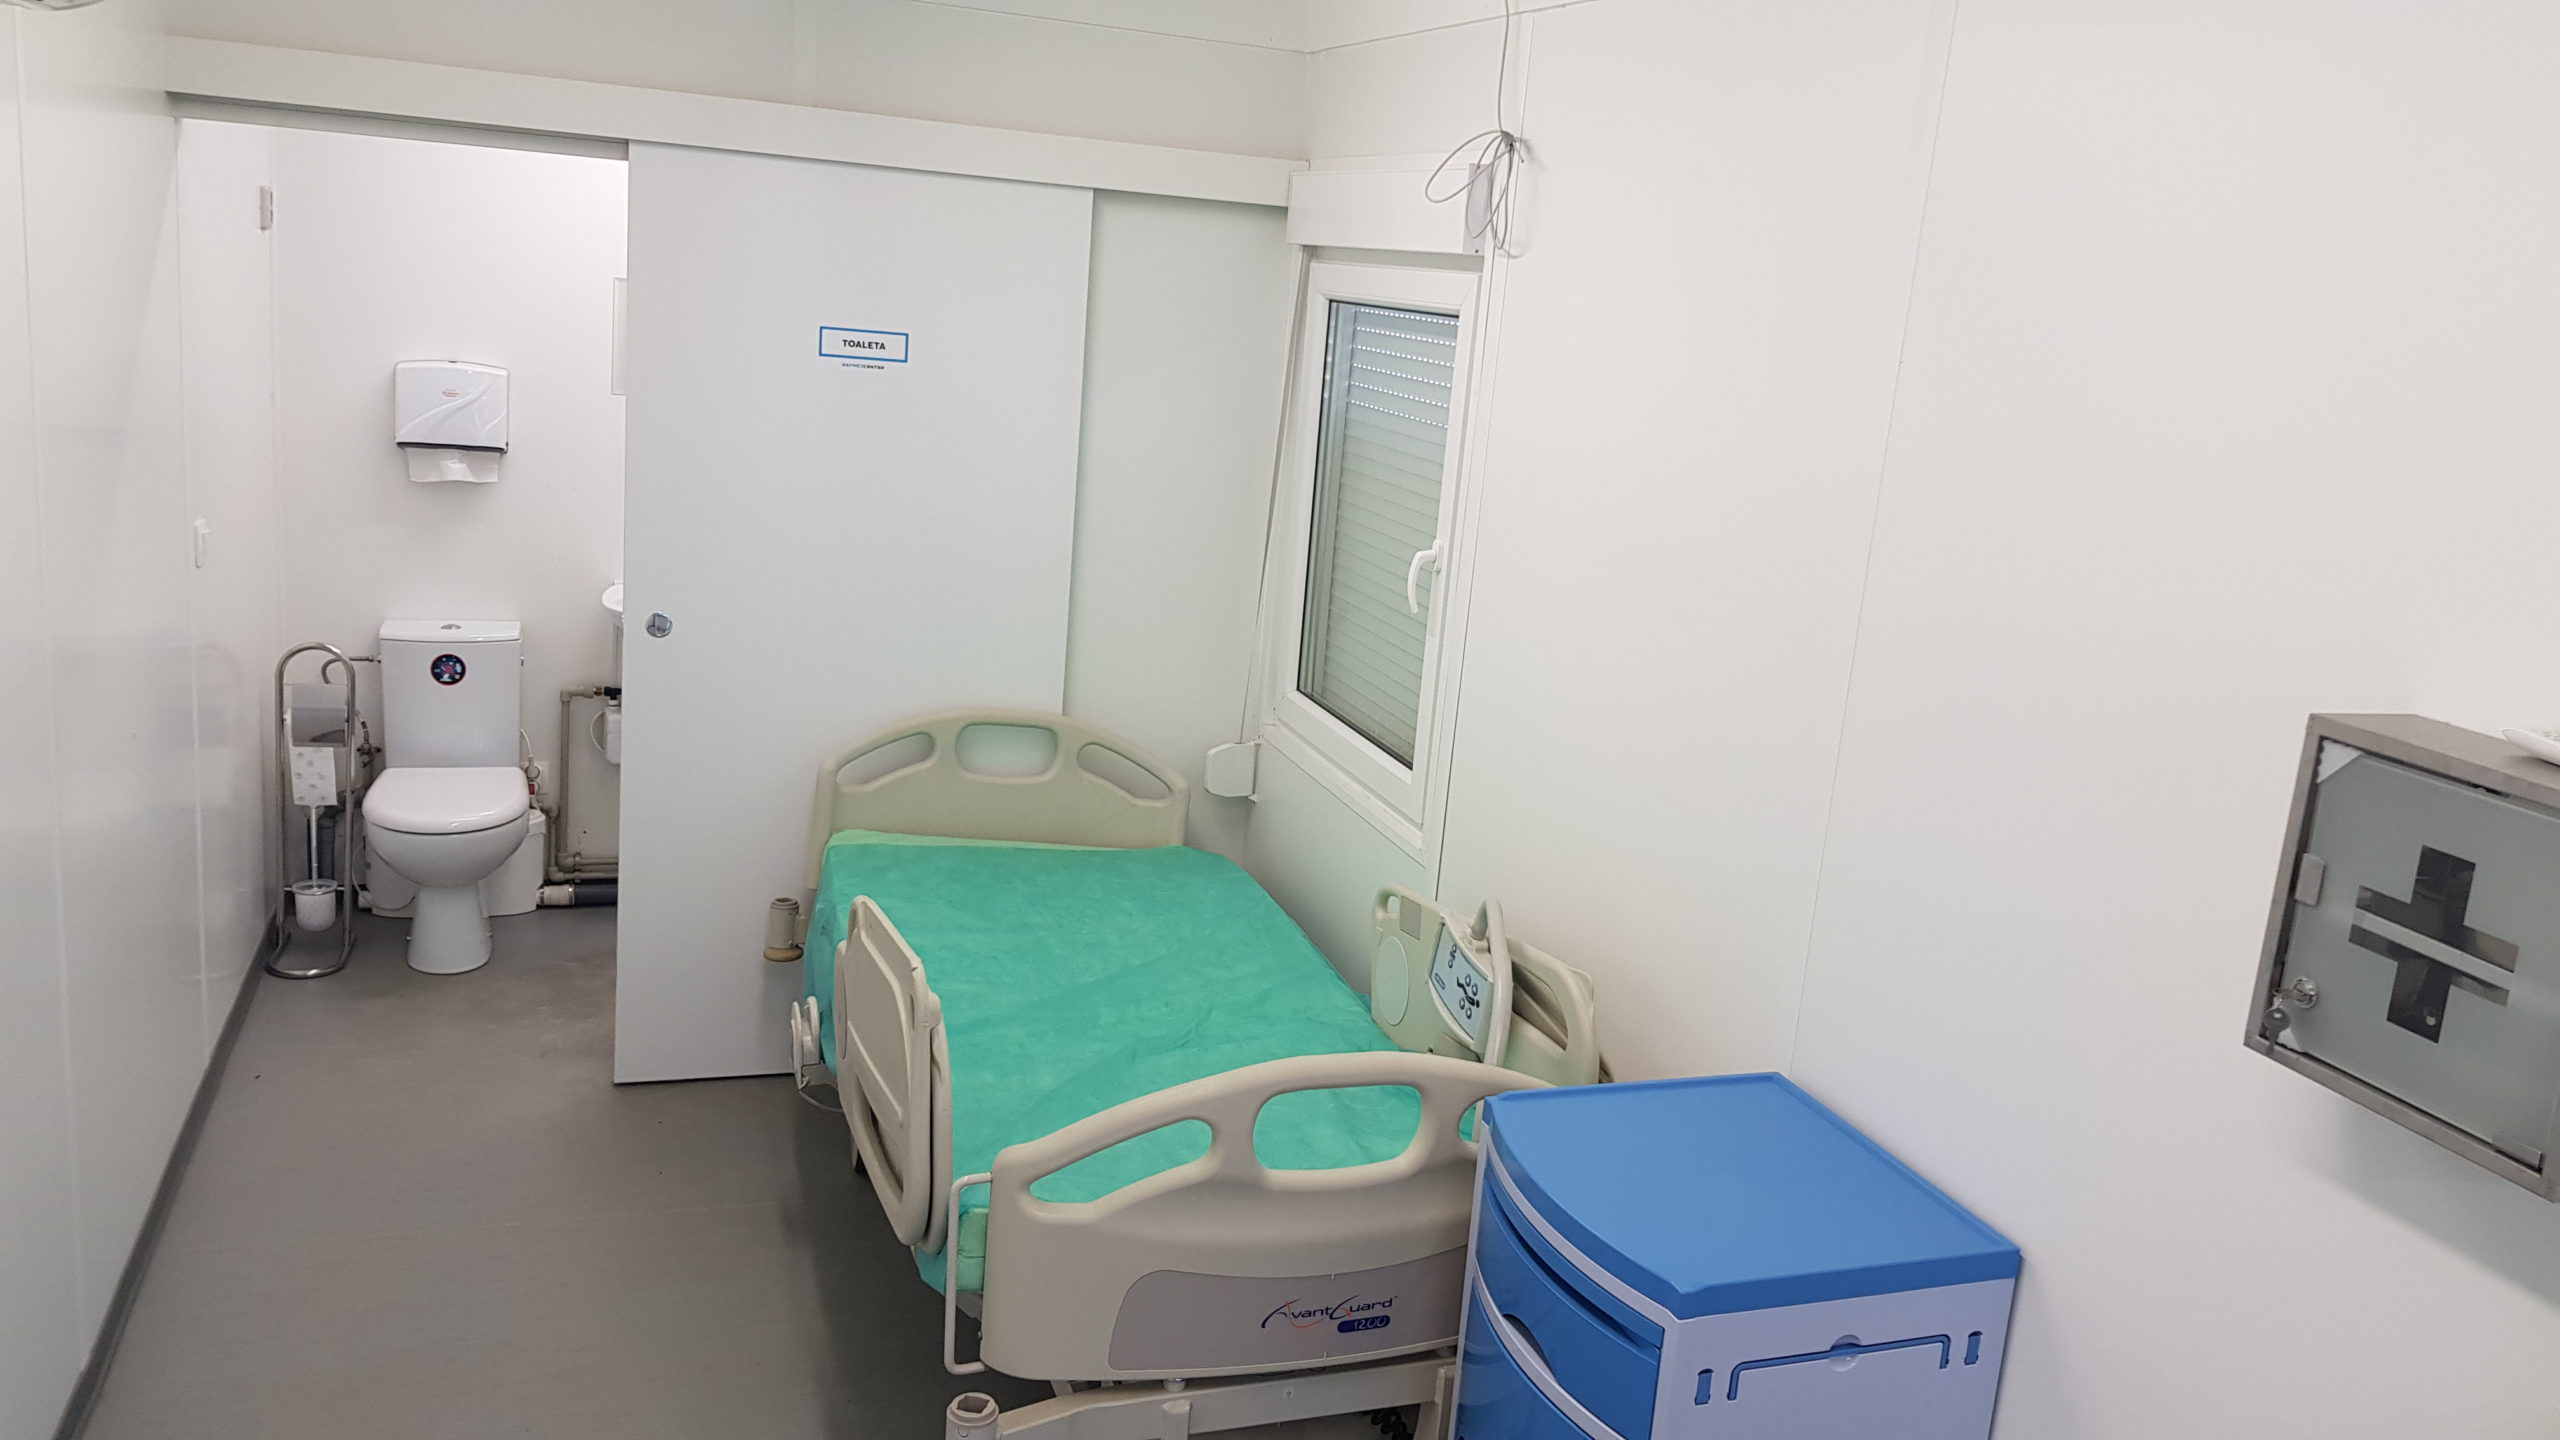 1-person isolation room